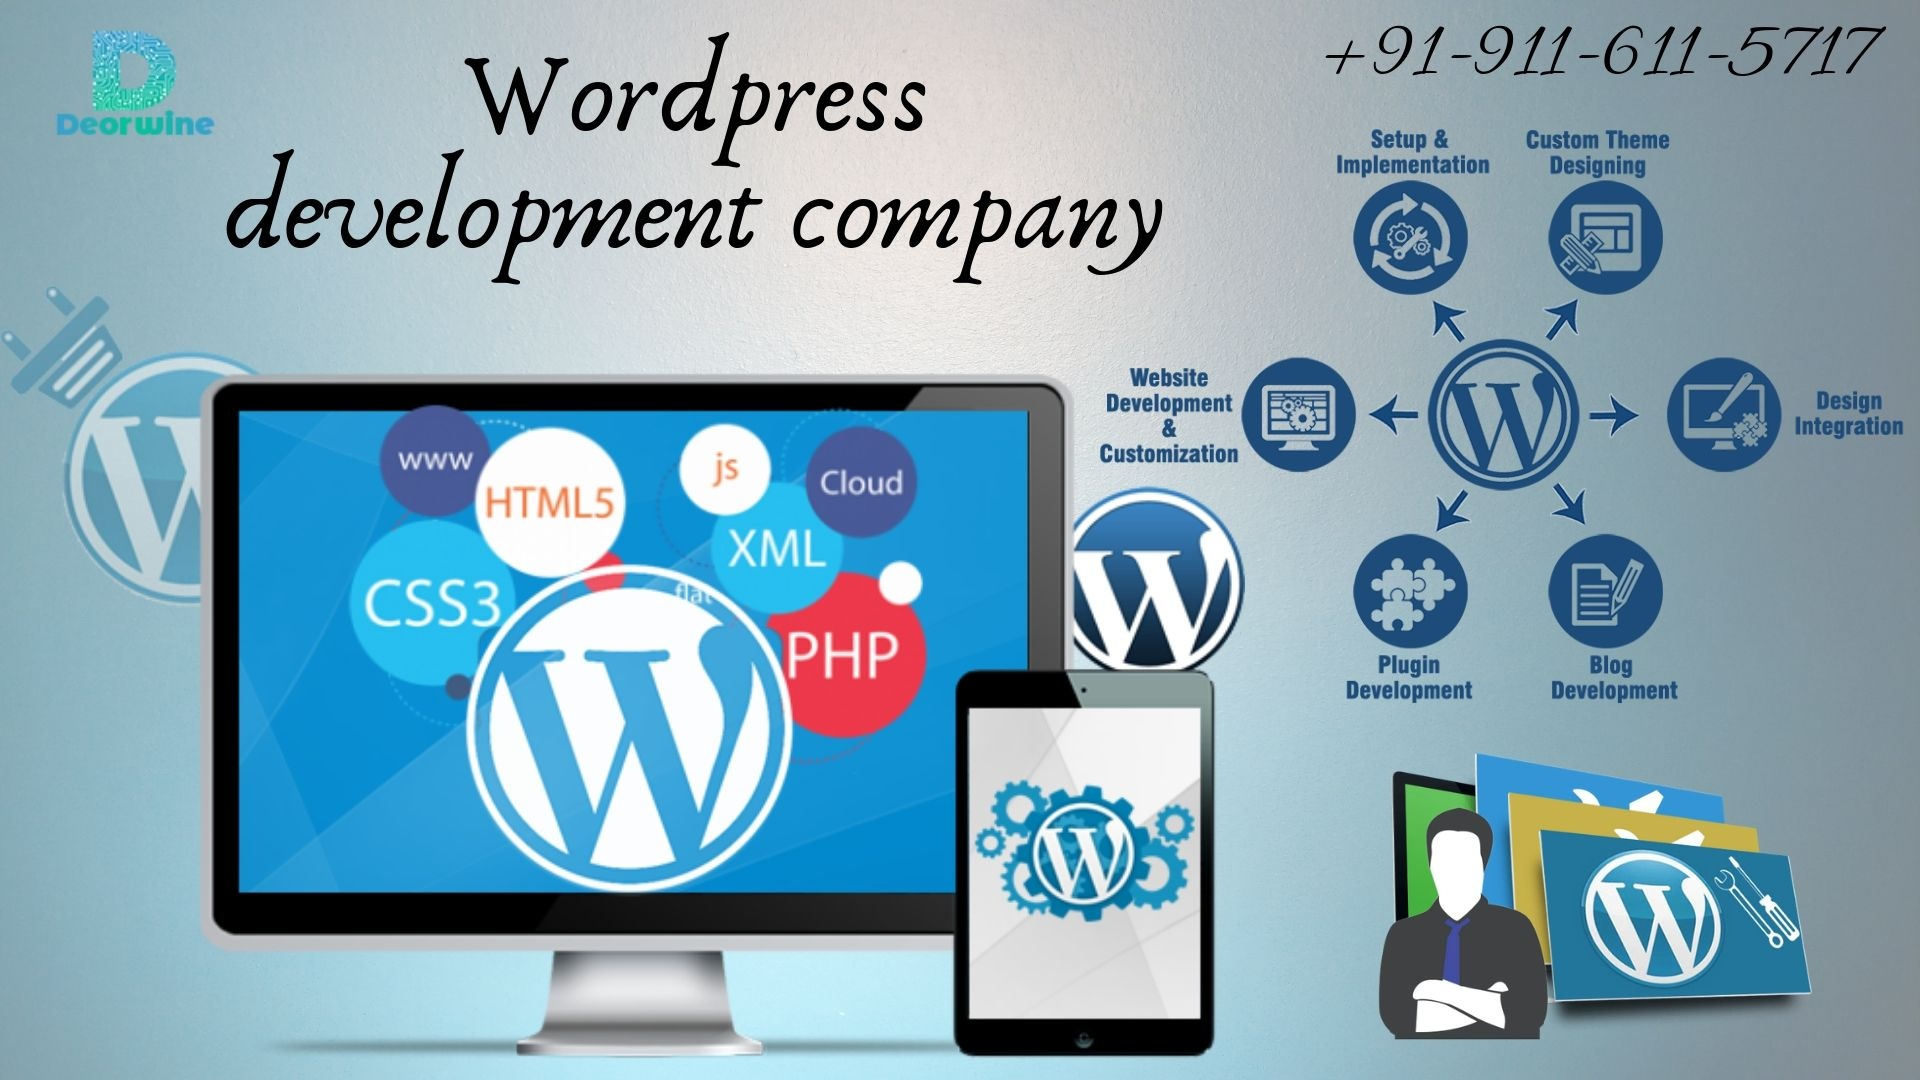 WordPress News: Wordpress development company